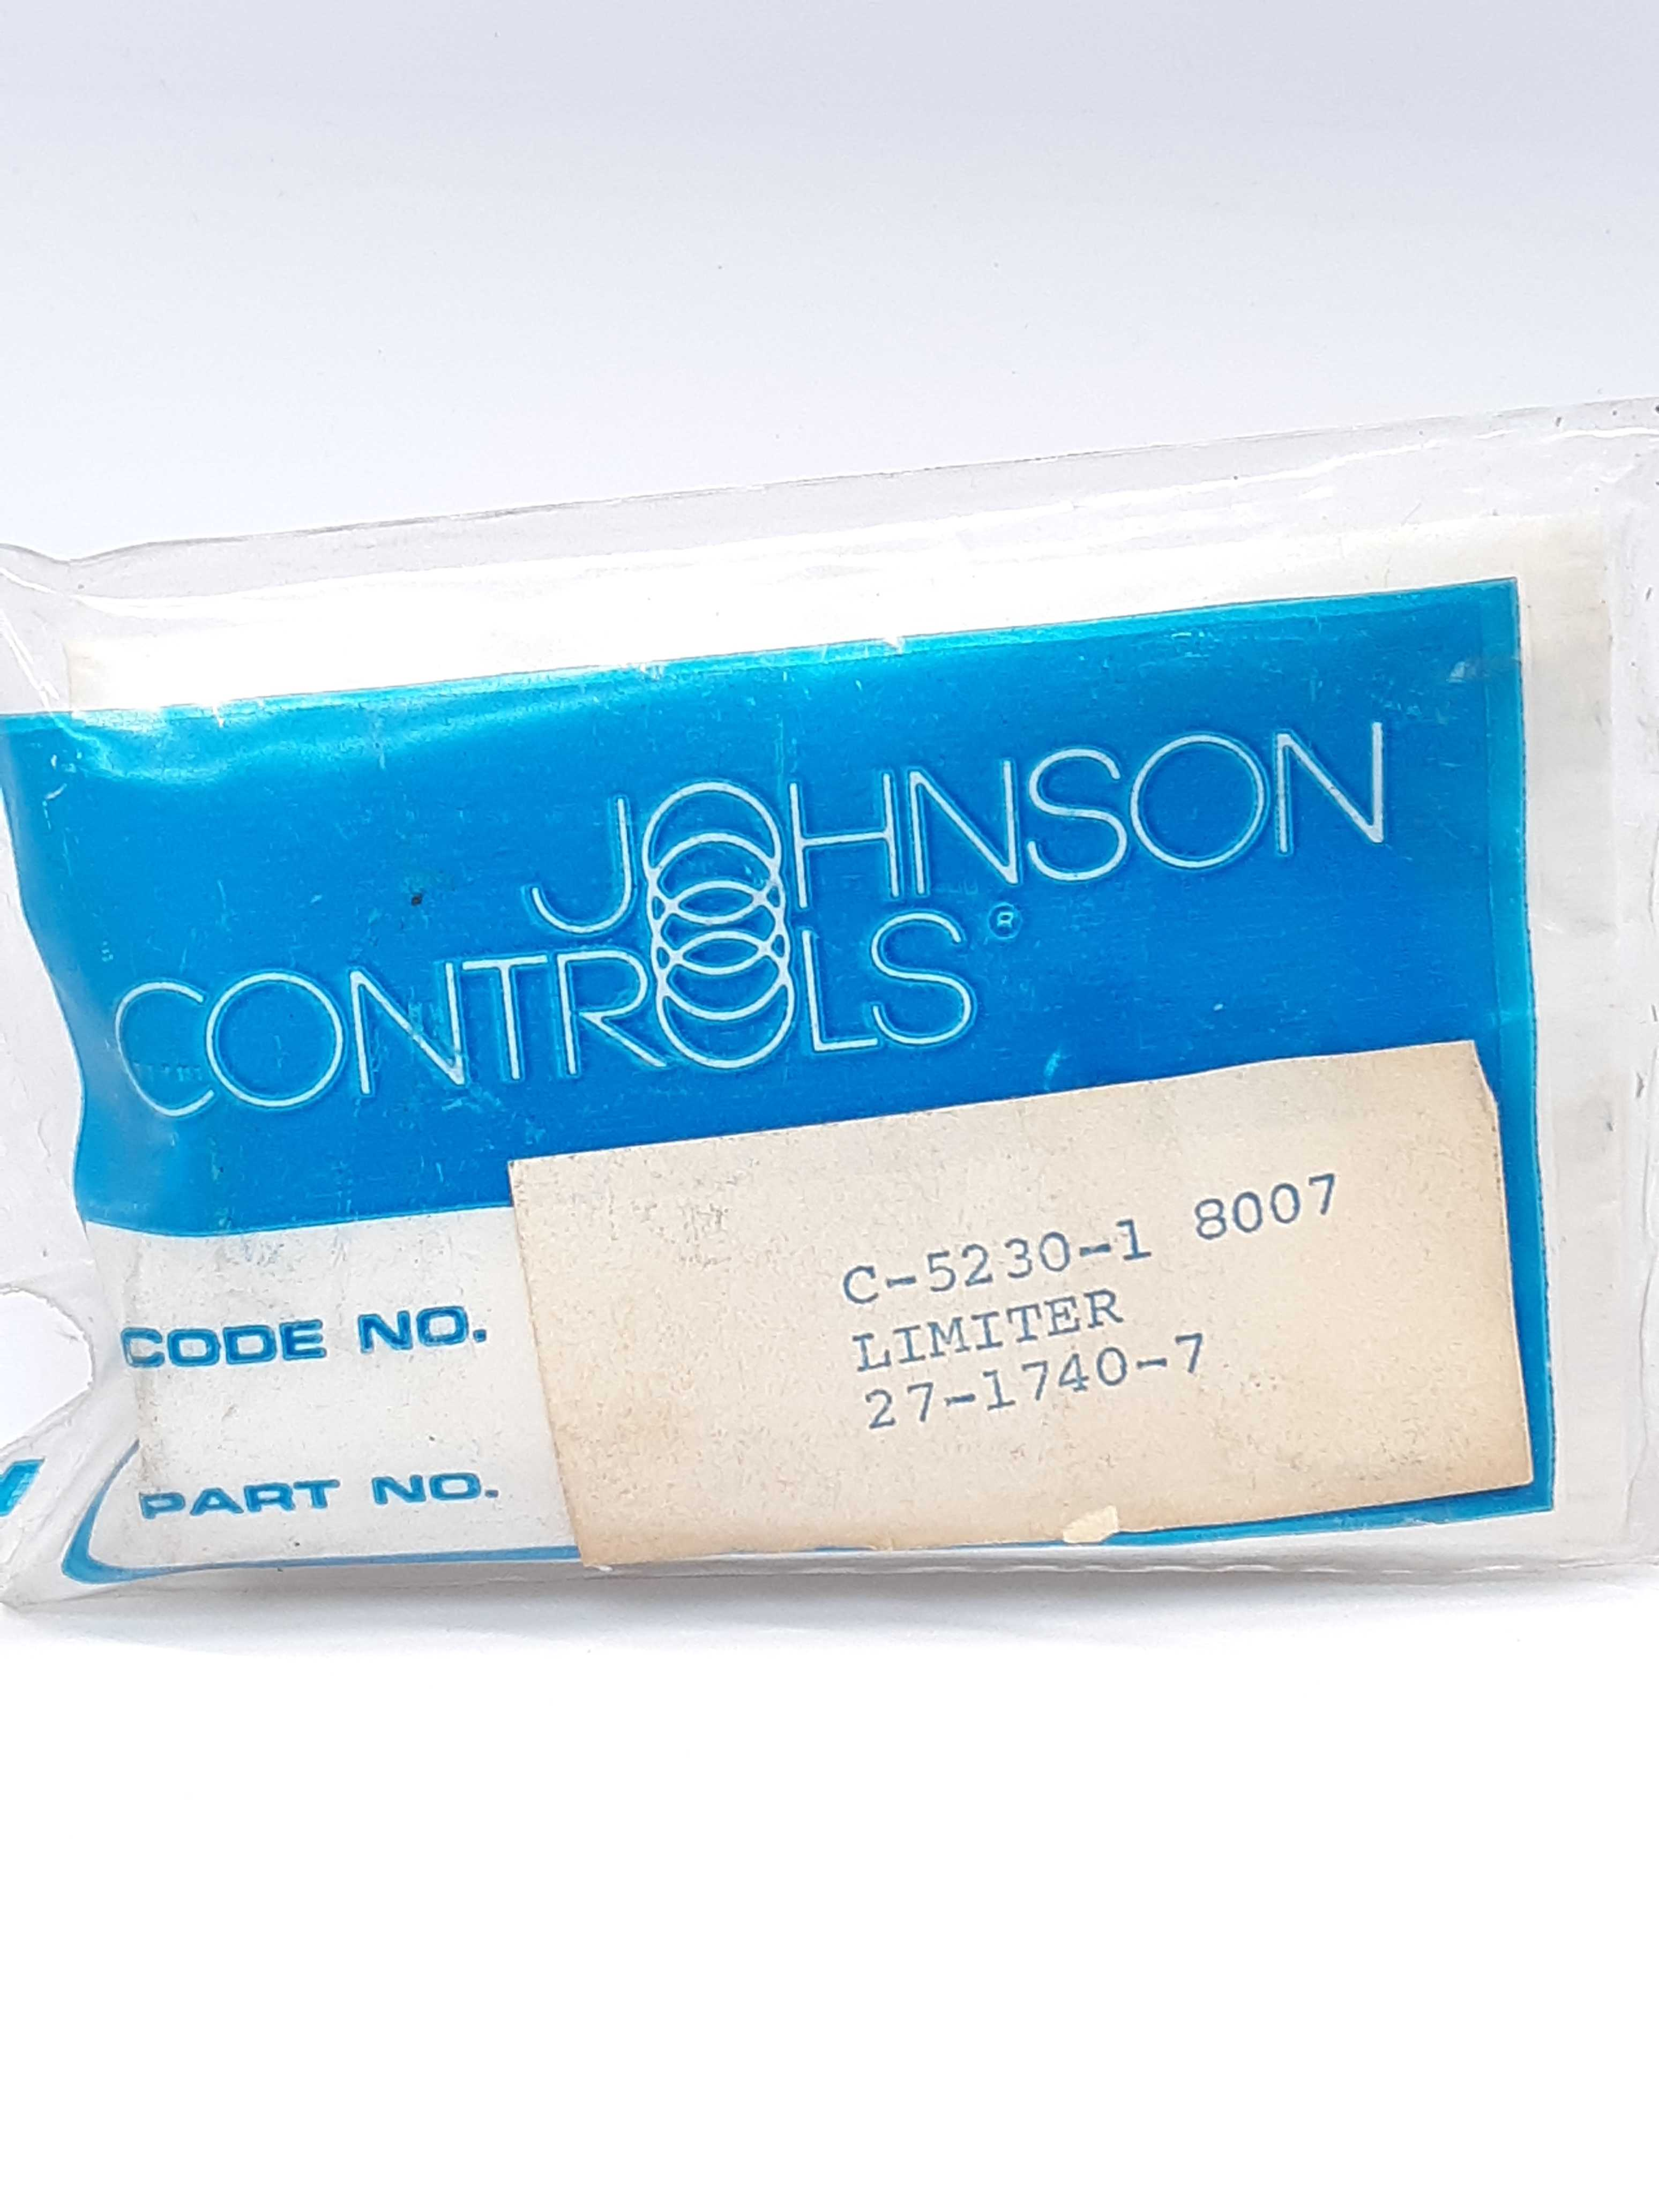 Johnson Controls C-5230-1 Signal Limiter